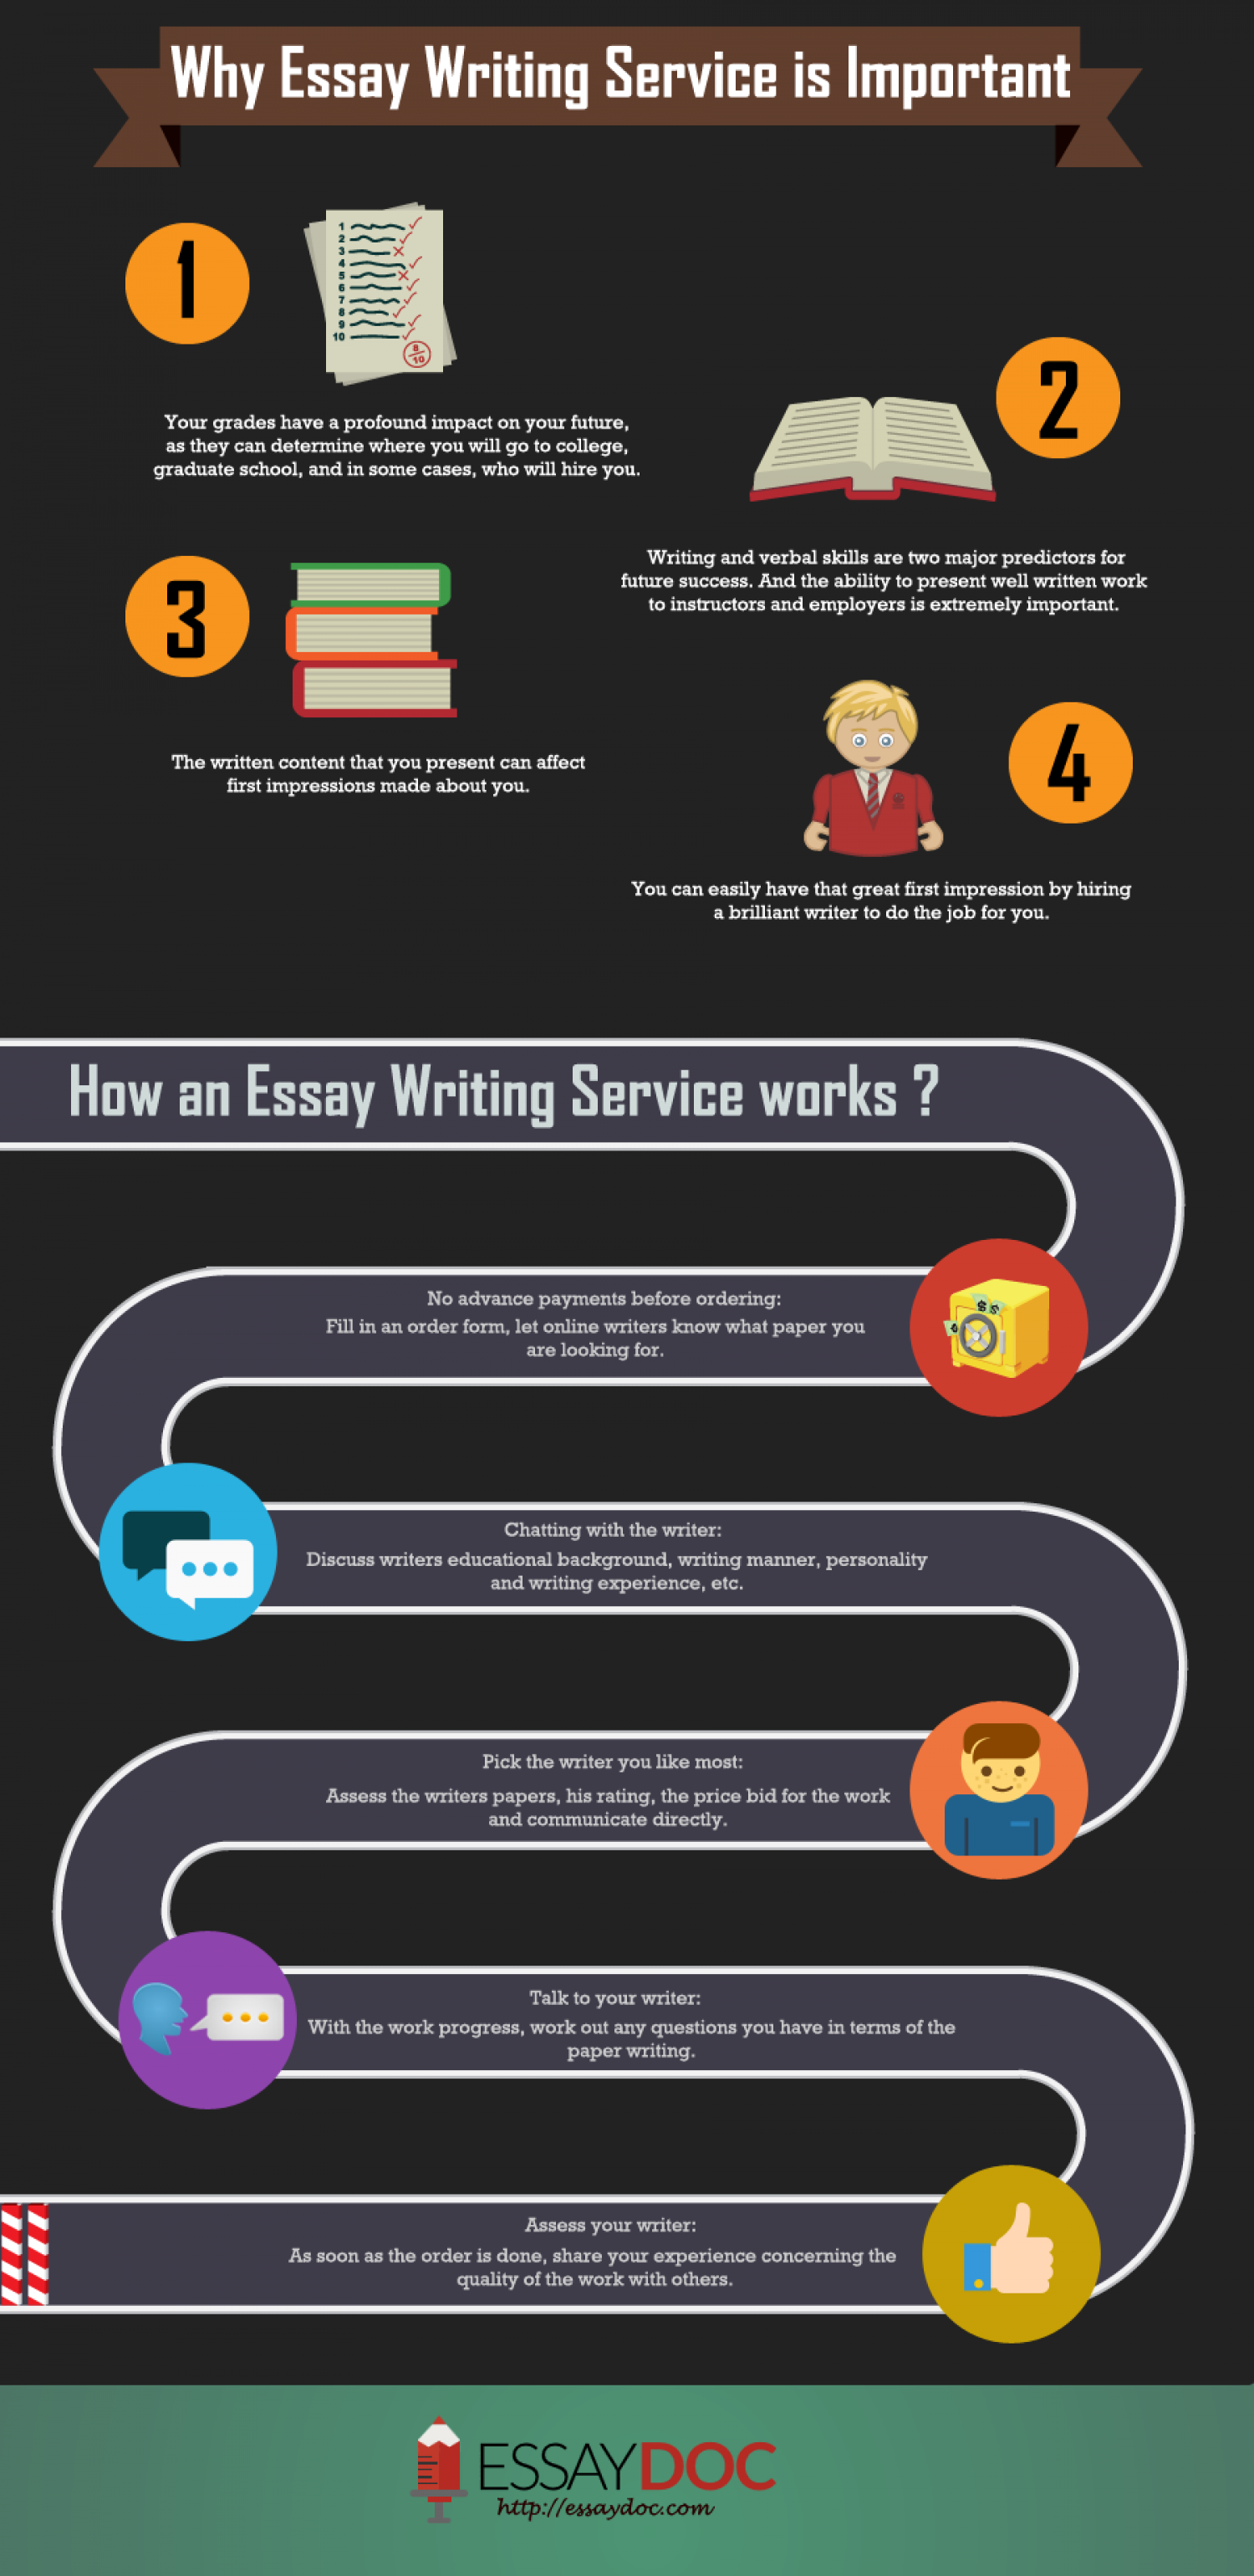 why essay writing service is important ly why essay writing service is important infographic